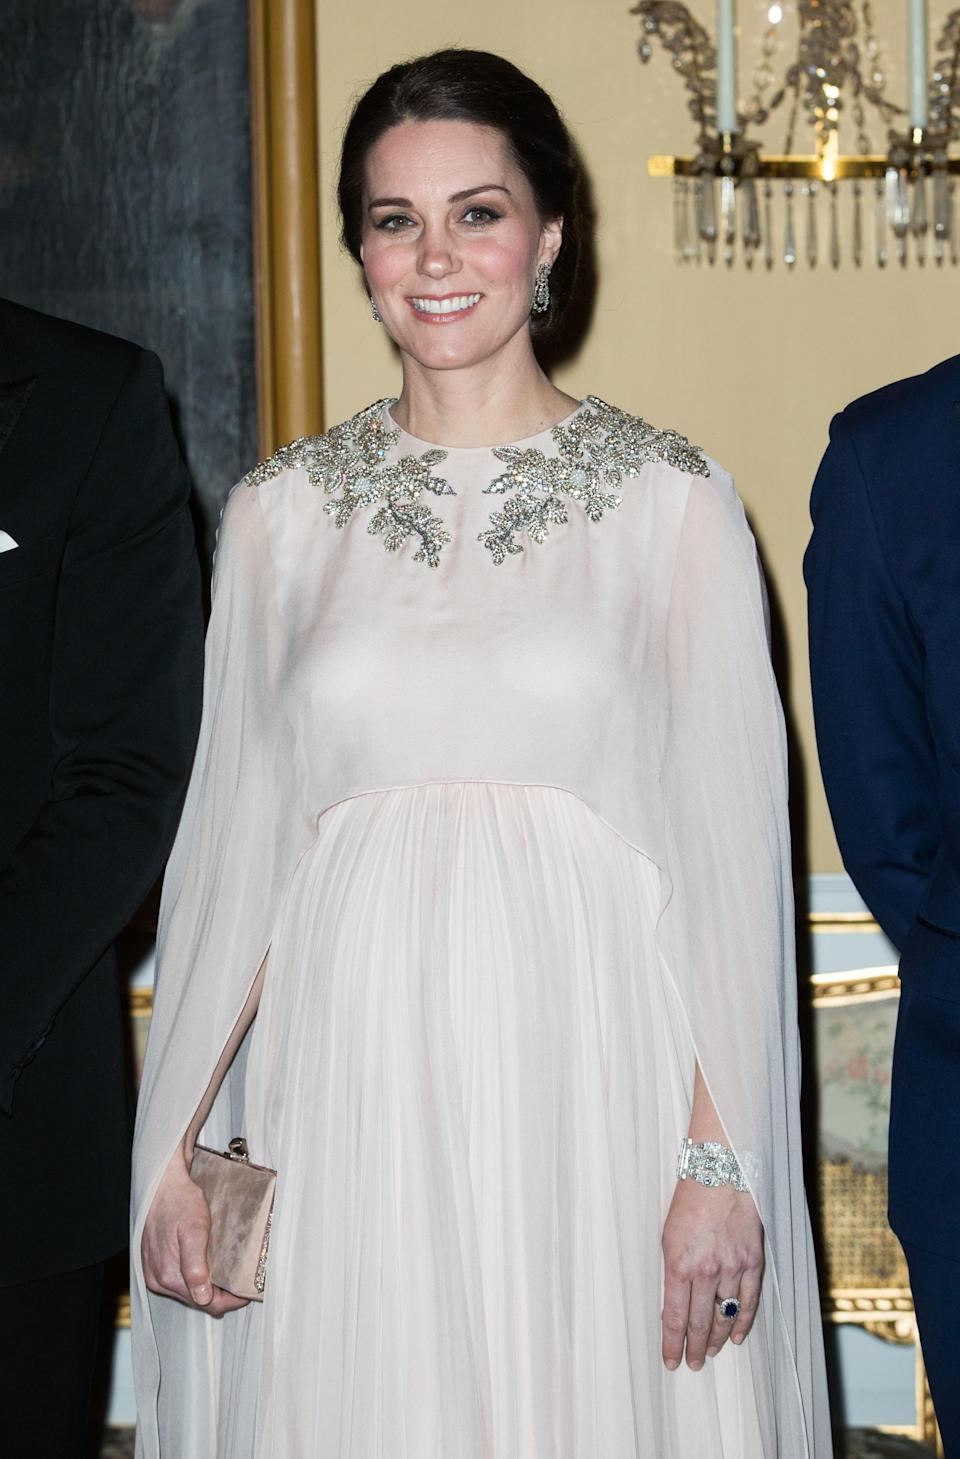 <p><strong>The occassion:</strong> A dinner held at the Royal Palace in Oslo on day three of the Duke and Duchess's Royal Tour to Sweden and Norway.<br><strong>The look:</strong> A caped blush pink Alexander McQueen gown with embellishment at the neckline. <br>[Photo: Getty] </p>